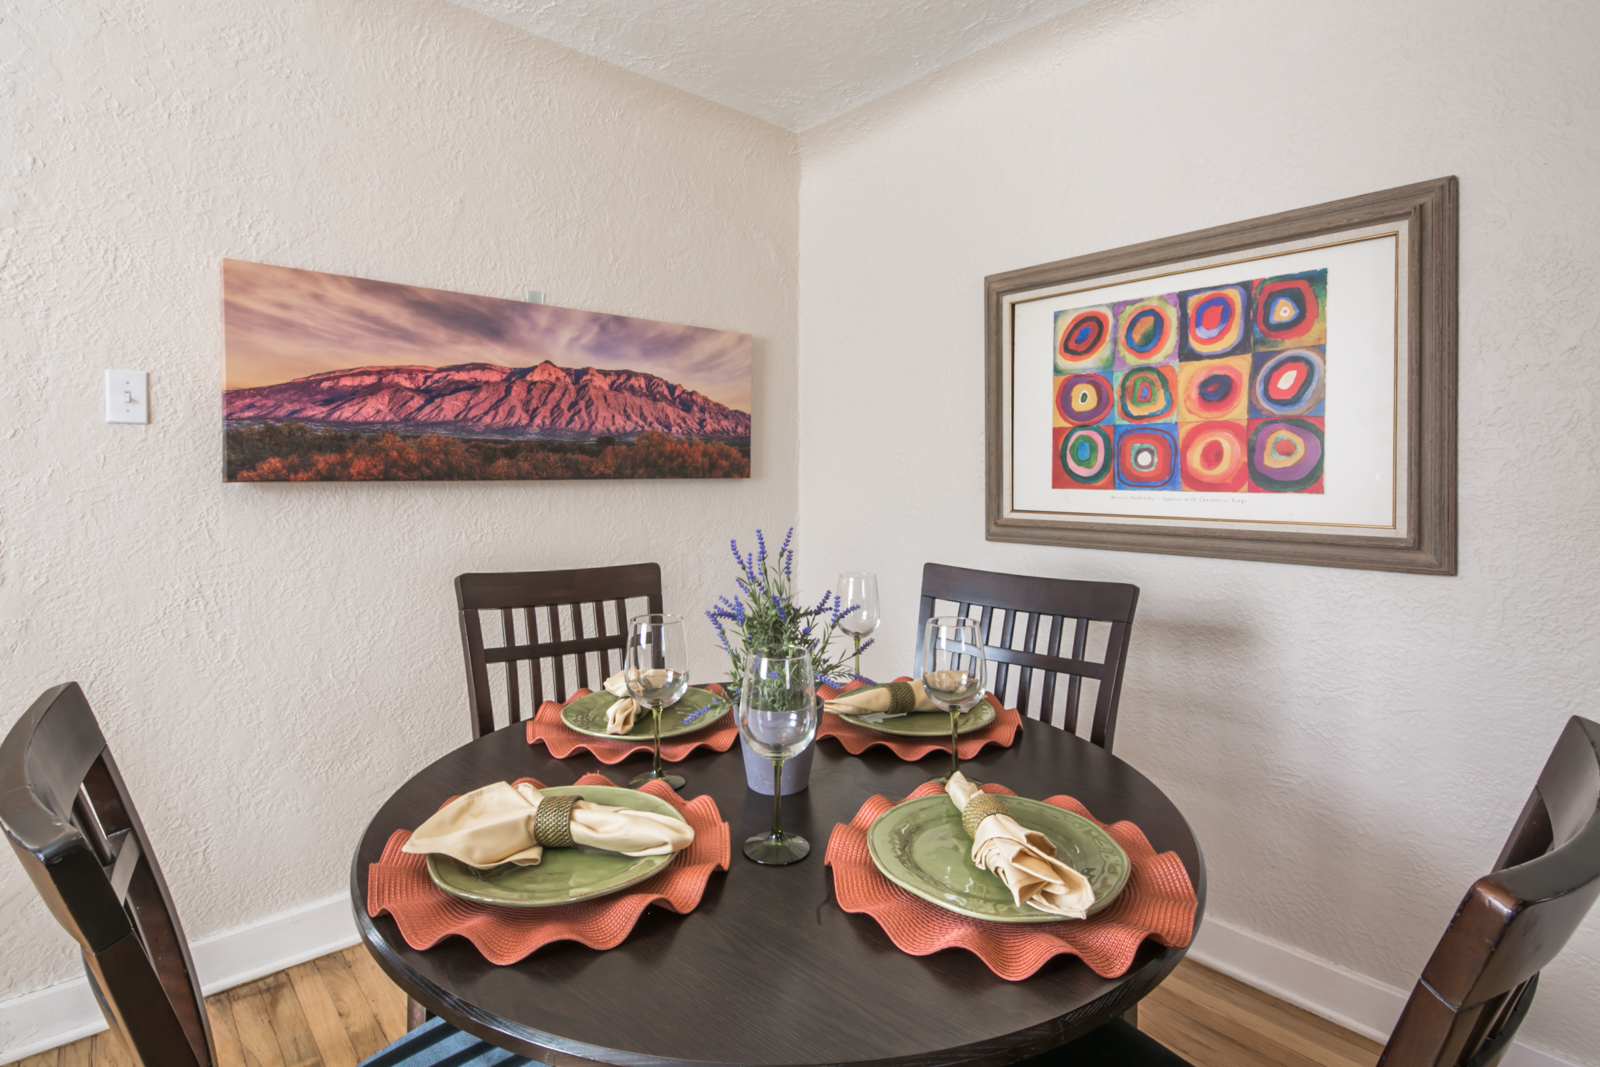 Home Staging In Albuquerque: Home Staging Photos of UNM Dollhouse 615 Ridgecrest Drive SE